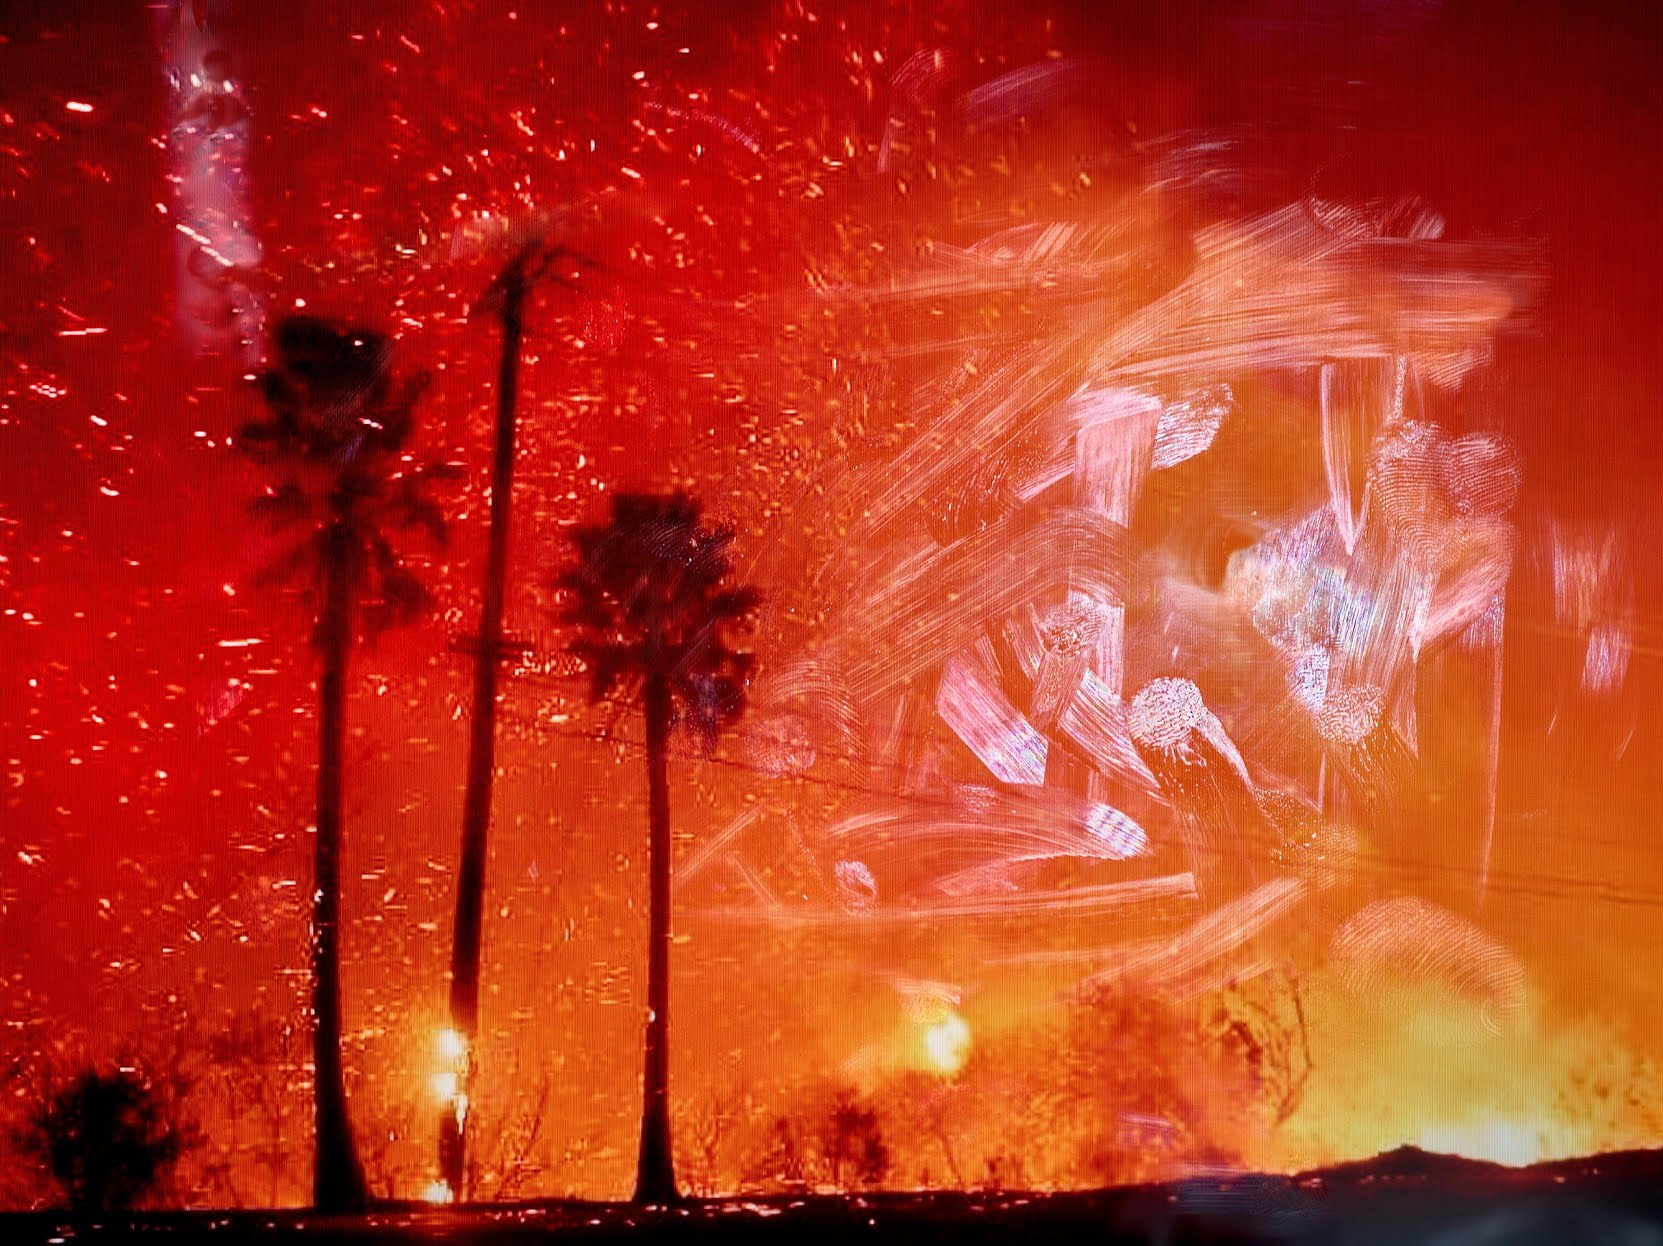 Palm trees with a fire in the background.